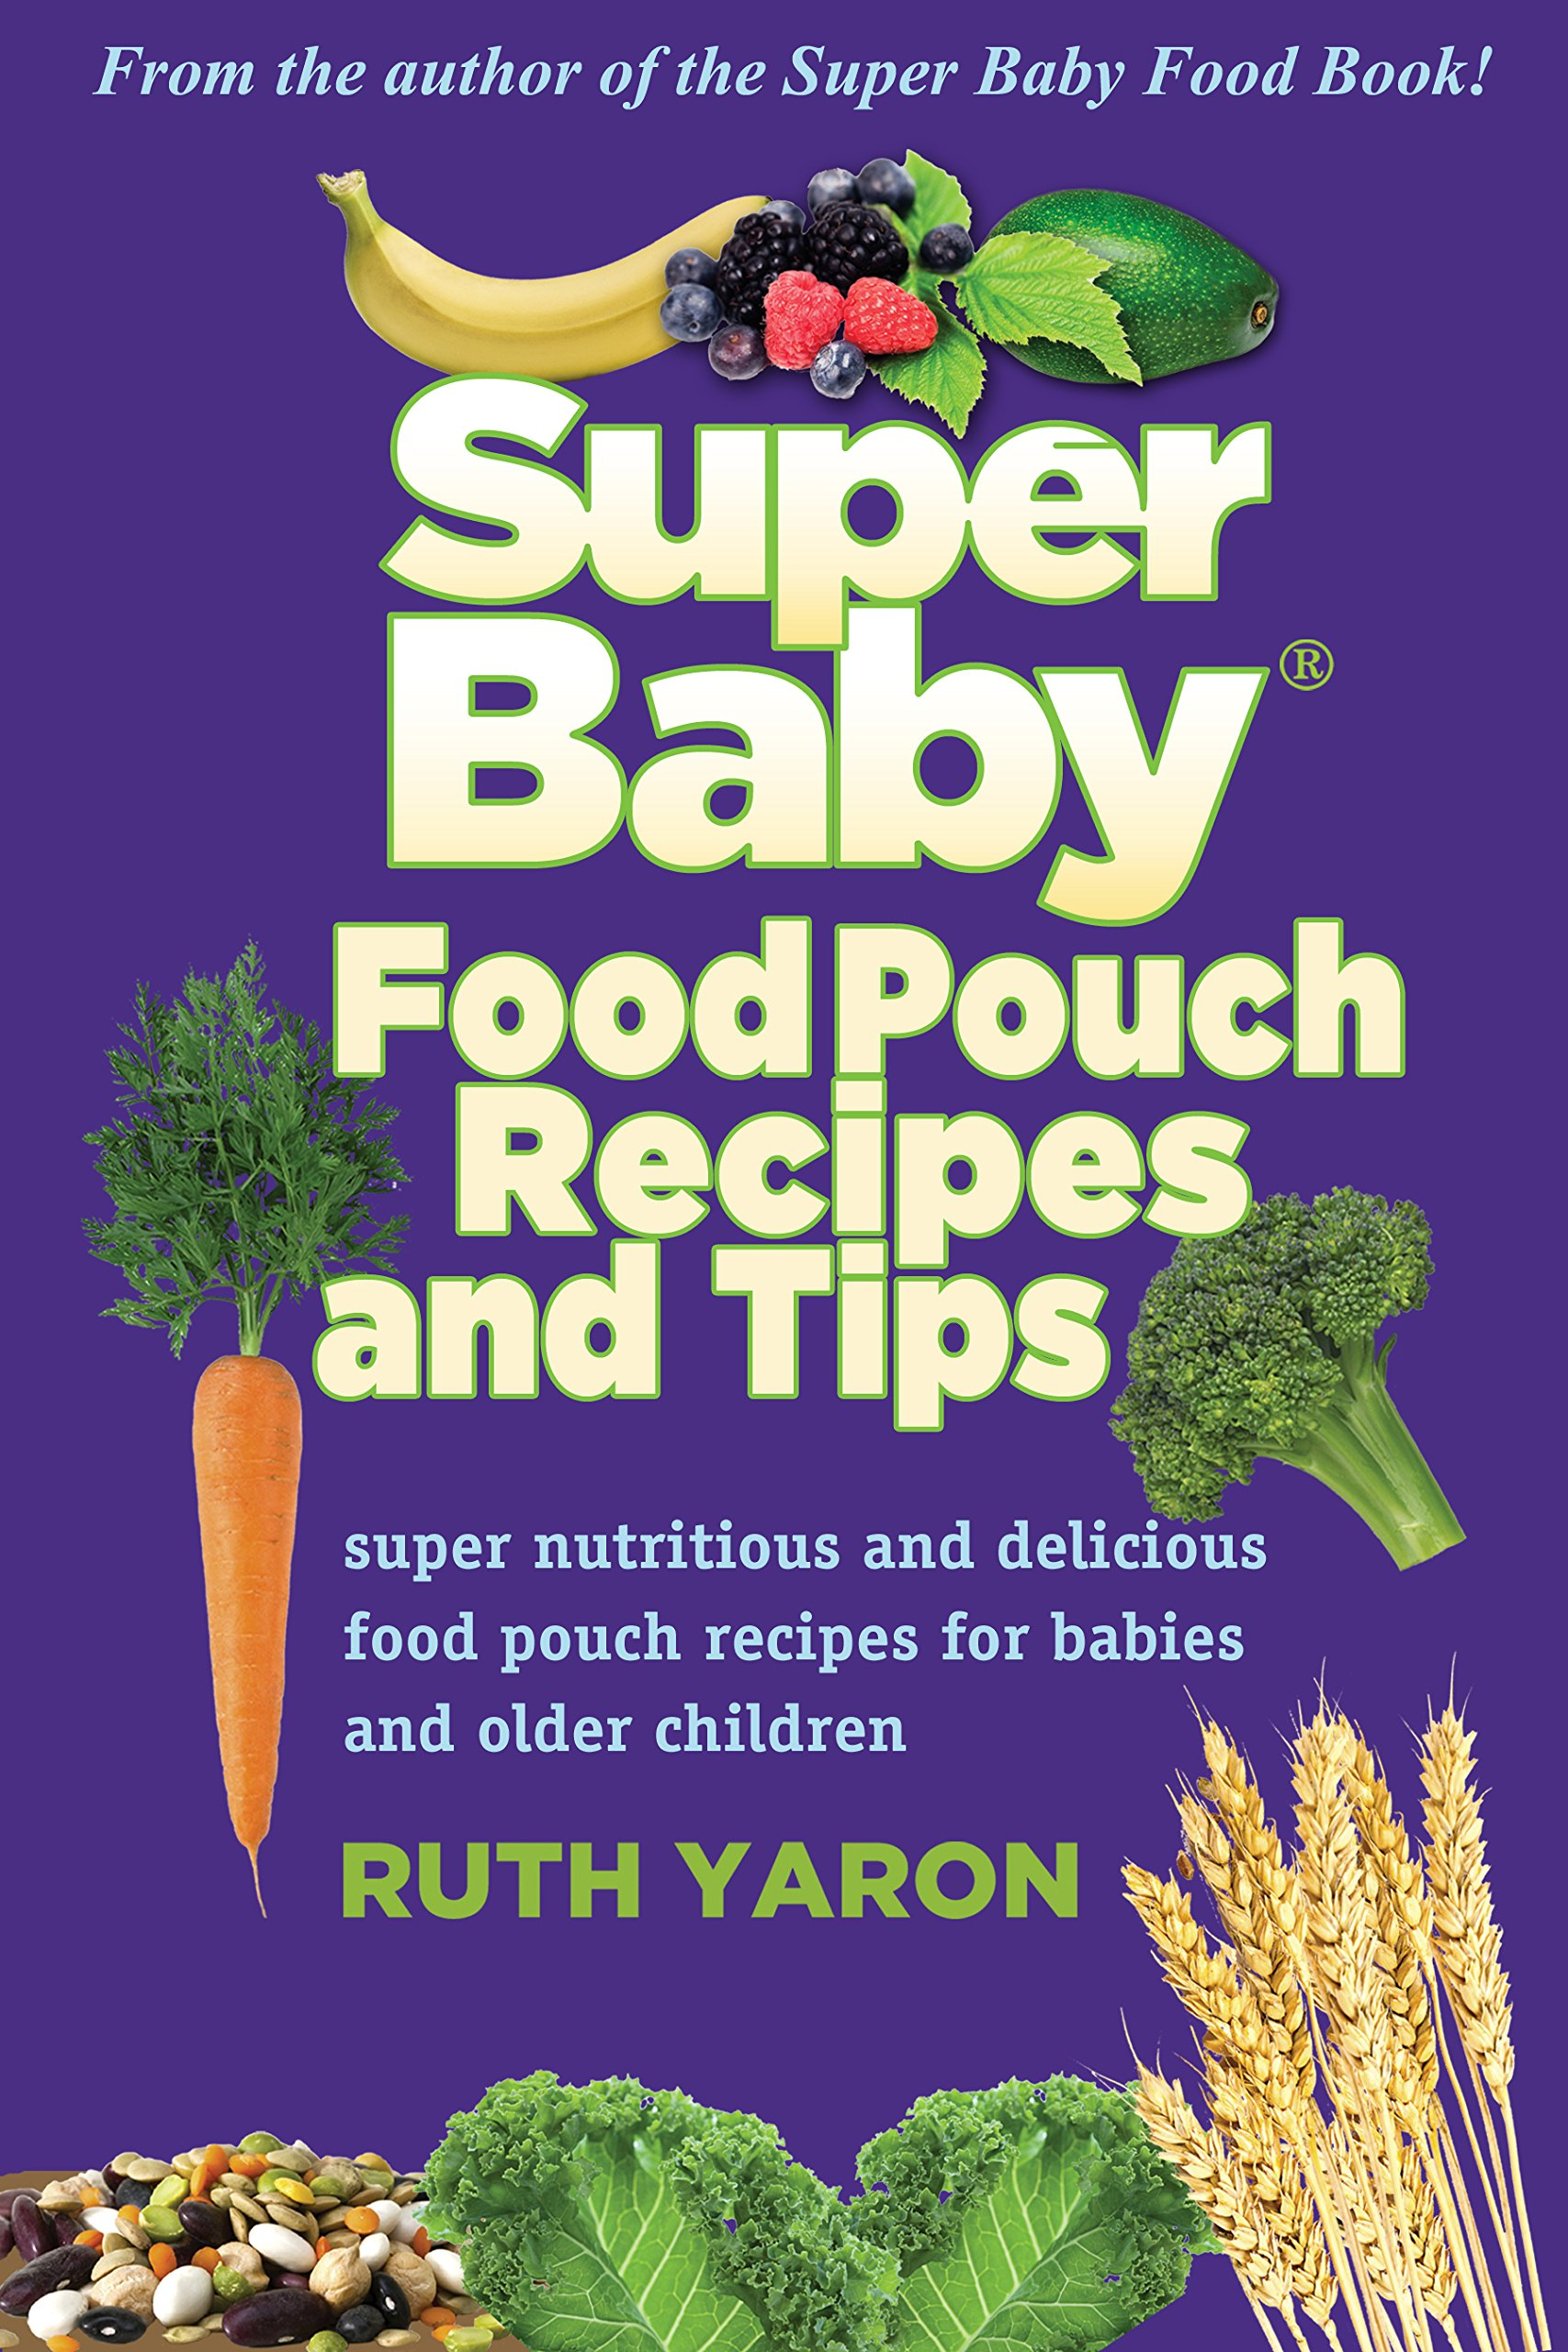 Super baby food pouch recipes and tips ruth yaron 9780965260398 super baby food pouch recipes and tips ruth yaron 9780965260398 amazon books forumfinder Gallery